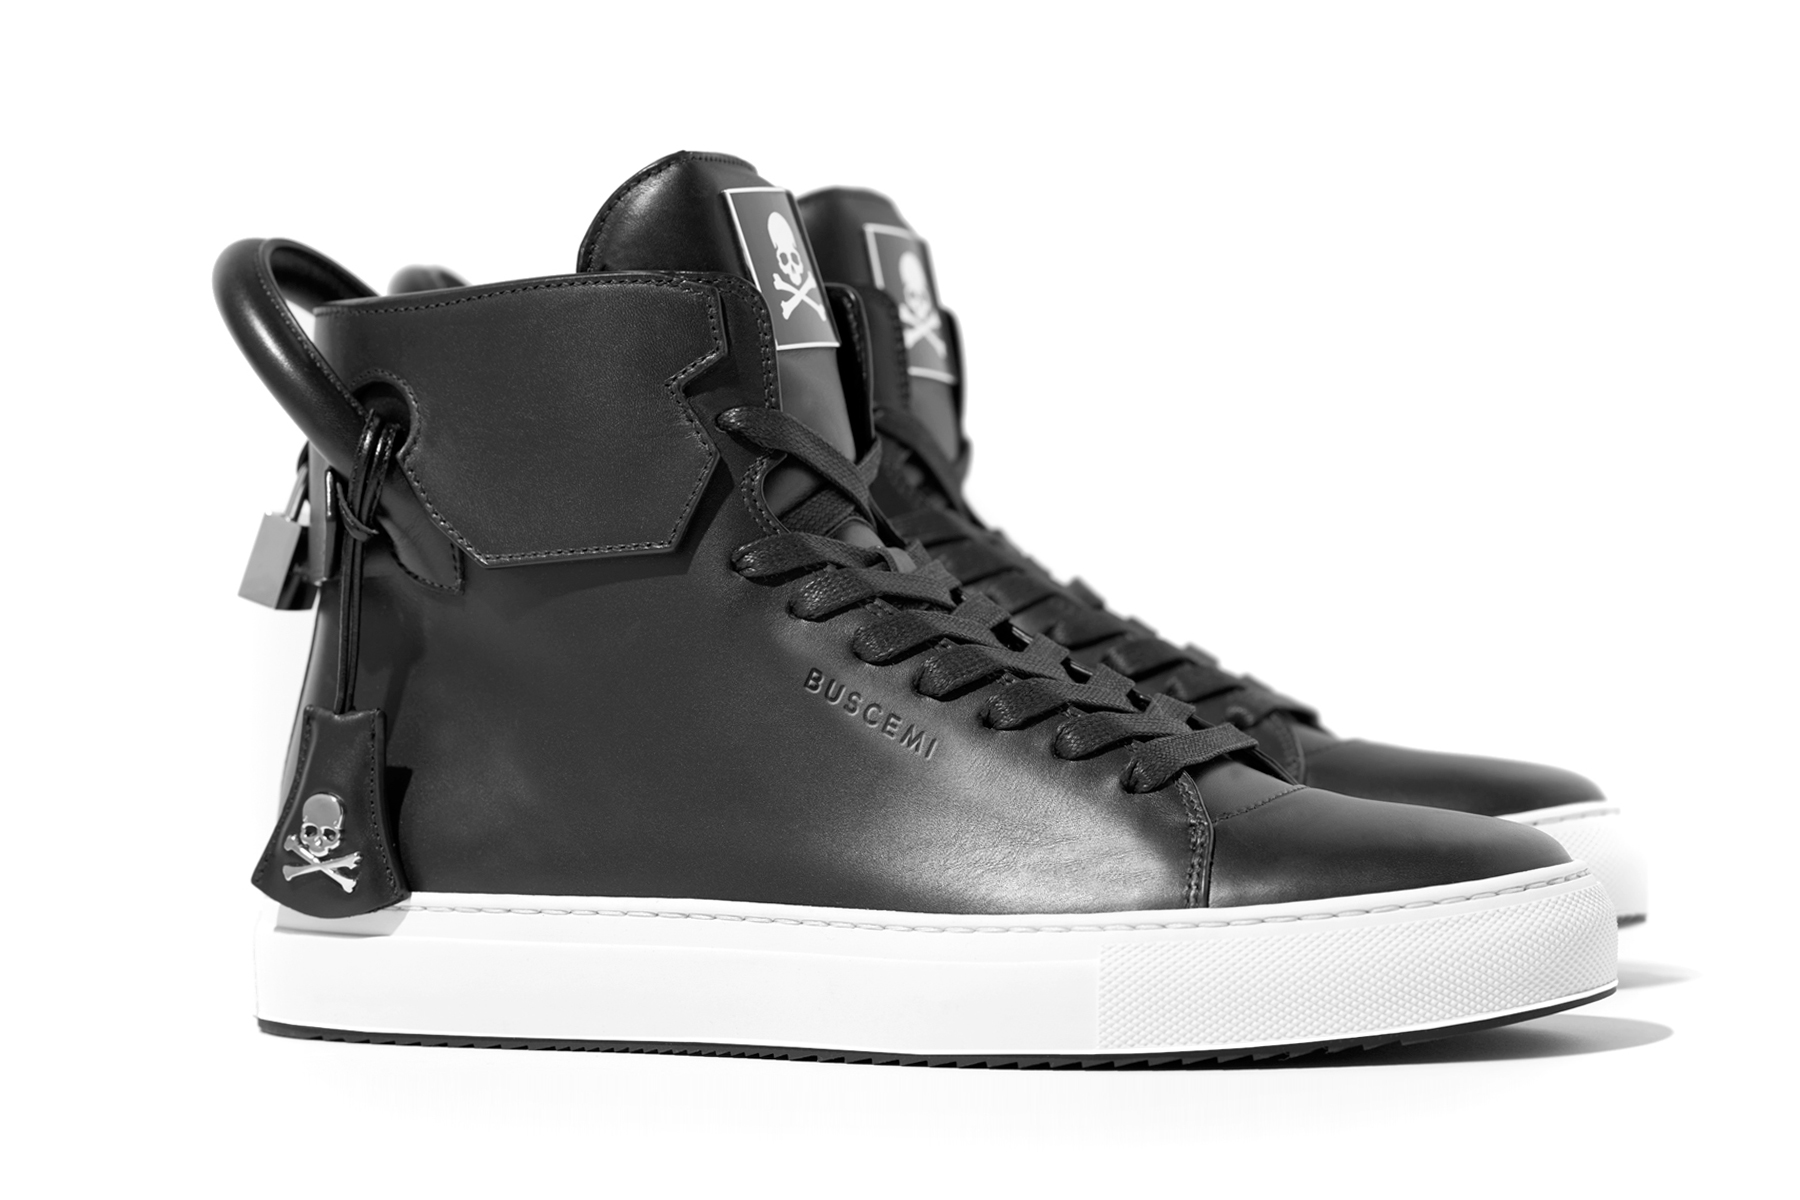 The new mastermind Japan x Buscemi Sneaker | HYPEBEAST